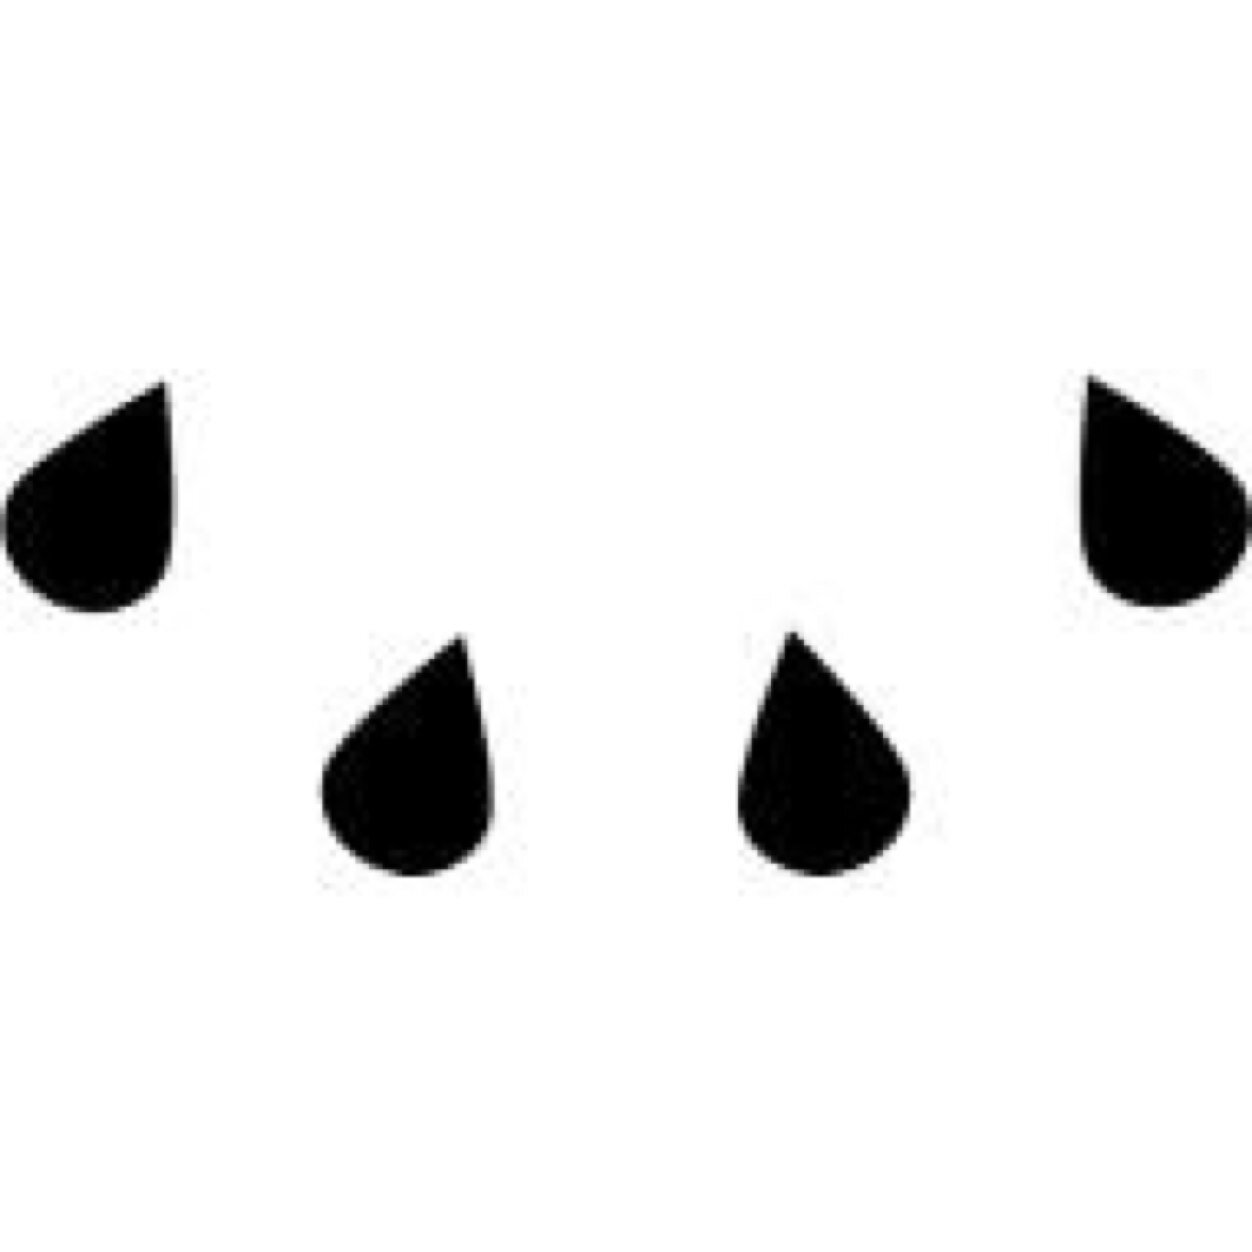 hi   xitong horan  twitter smiley face clip art emotions black and white Dancing Smiley Face Clip Art